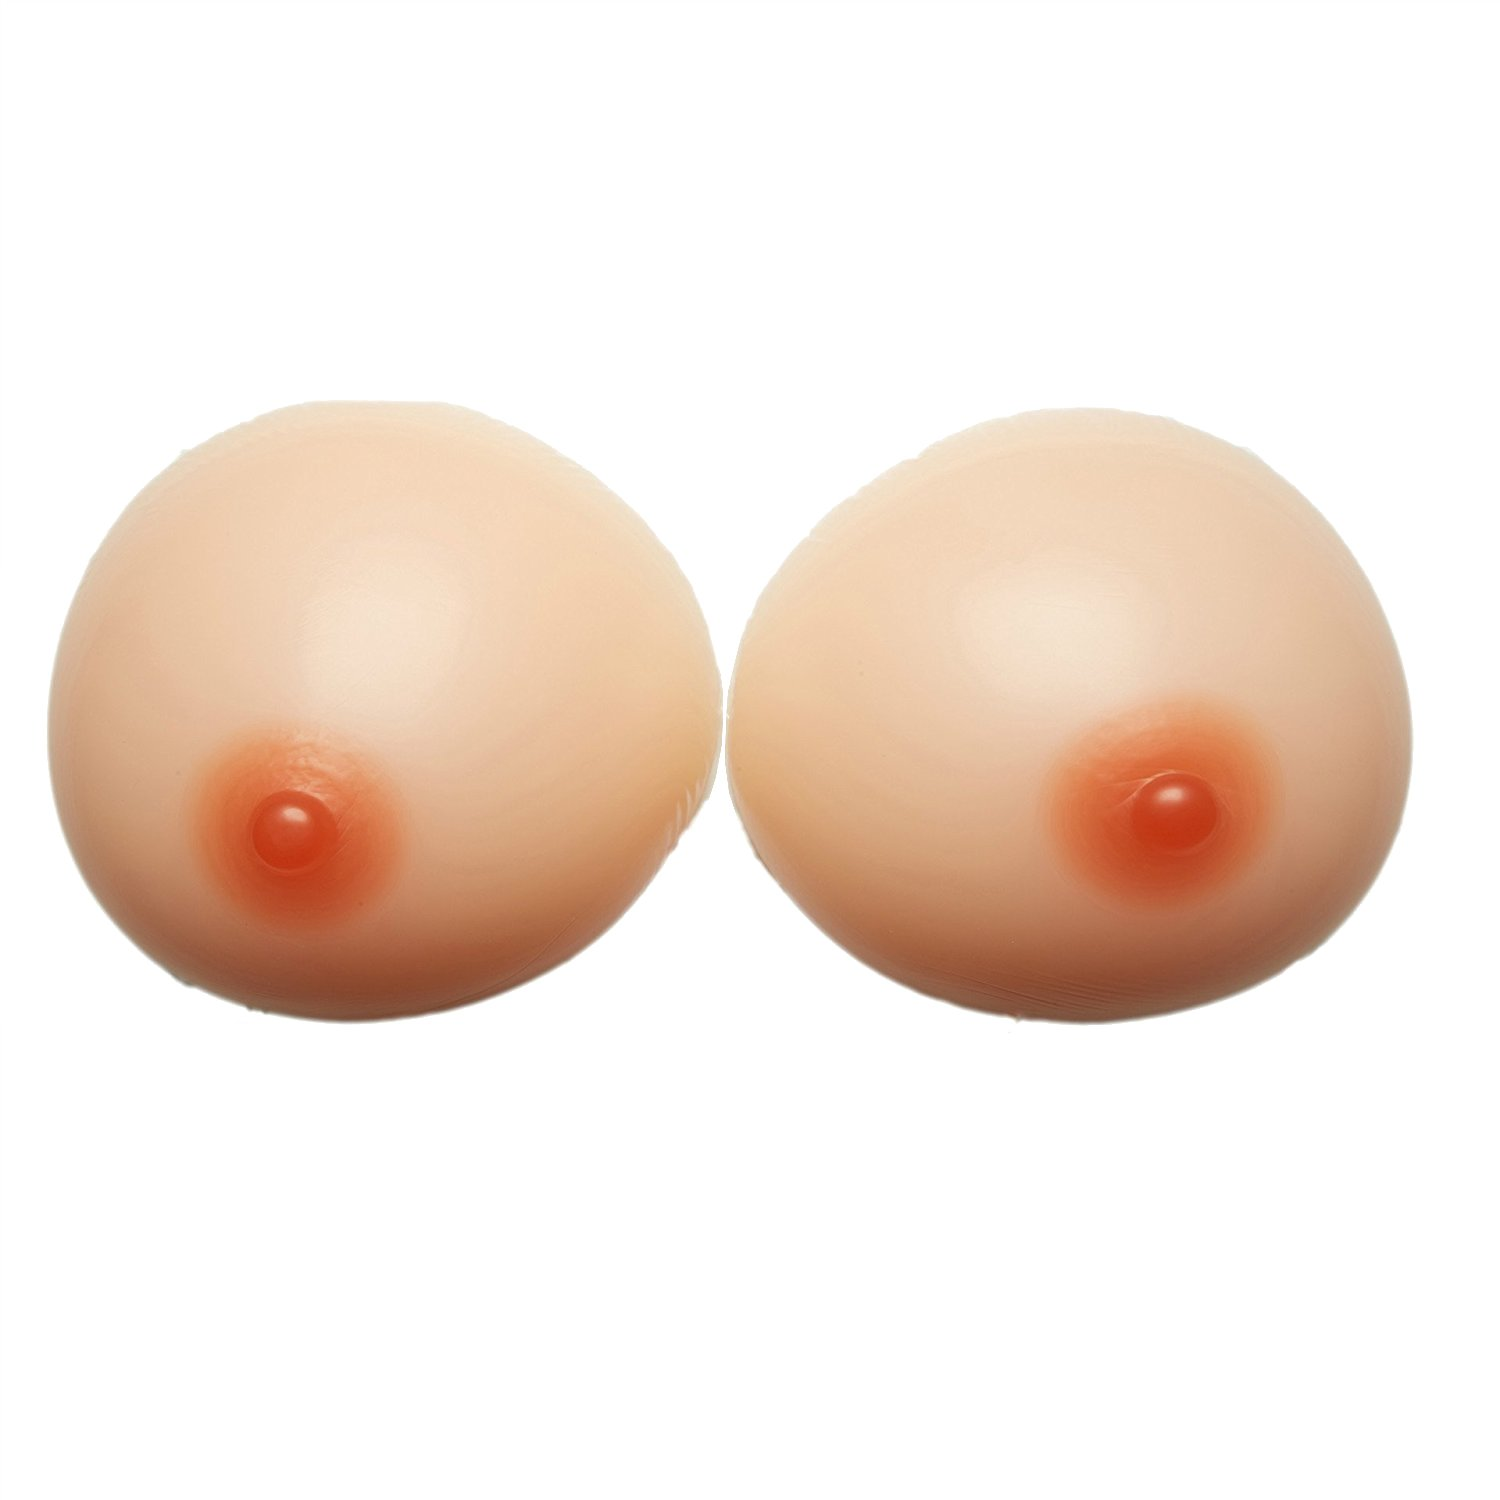 Amazon.com: Wide Silicone Breast Forms Mastectomy Wider Sun Kiss Size  8(2xl) 36dd 38d 40c: Health & Personal Care